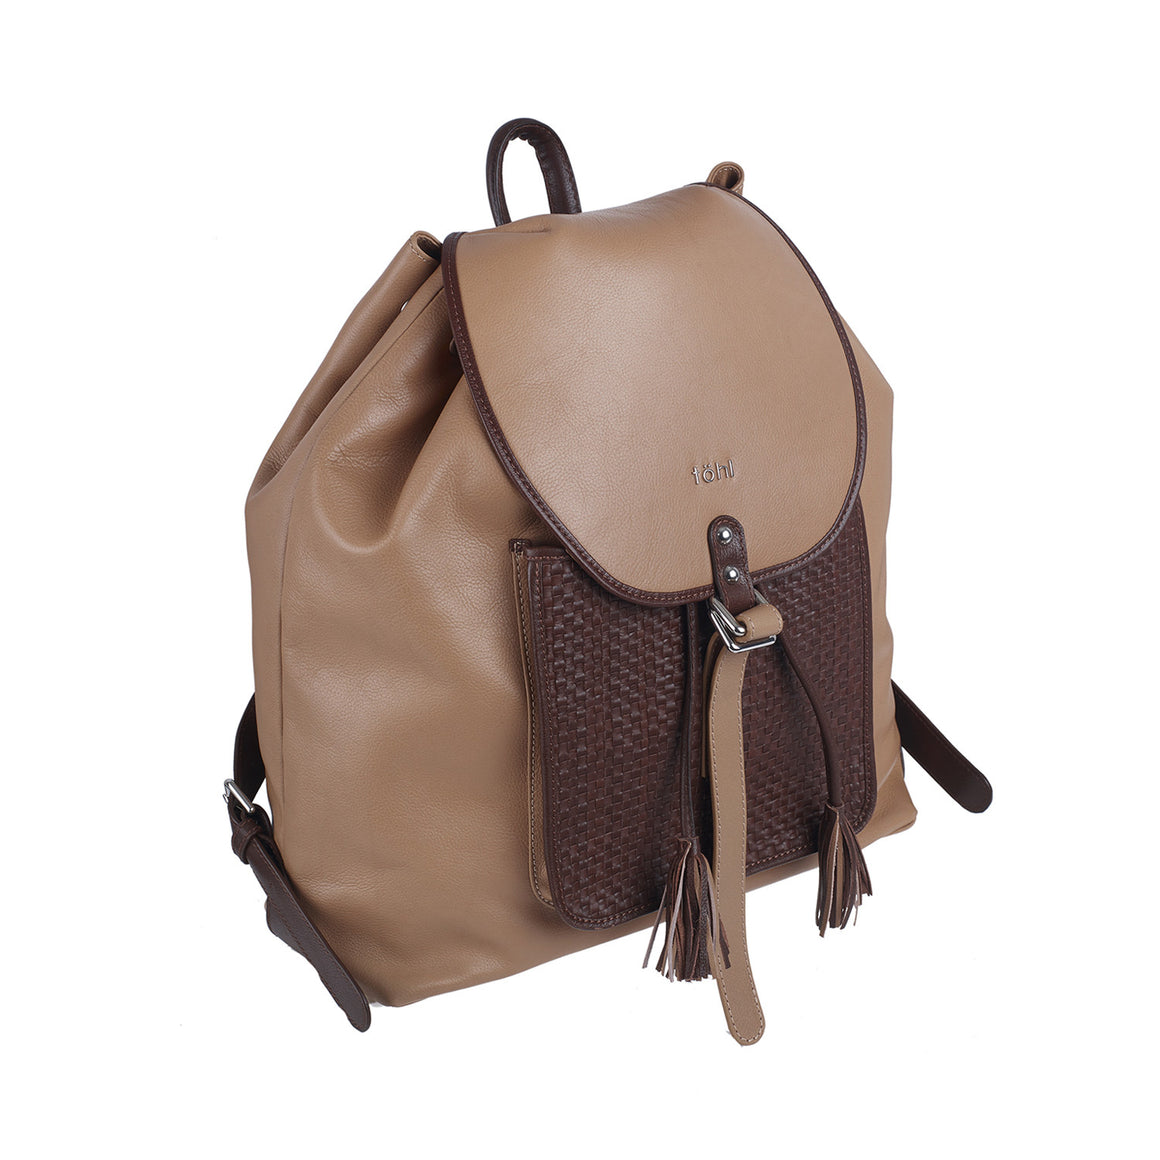 BP 0004 - TOHL NAYARA WOMEN'S FLAP FRONT BACKPACK - NUDE